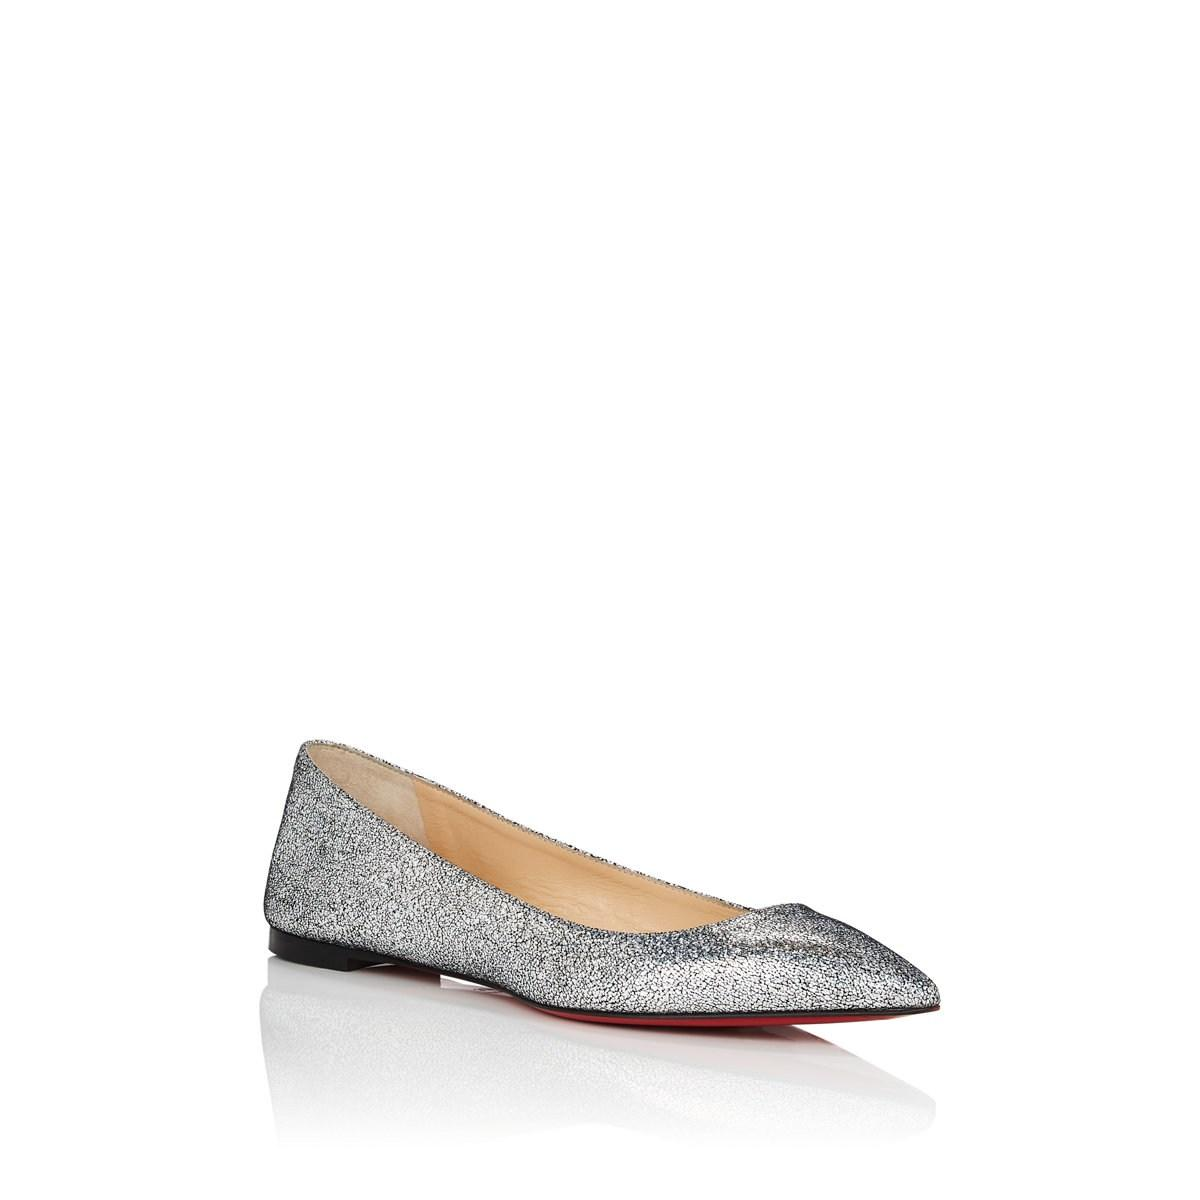 bbfddca79150 Christian Louboutin - Metallic Ballalla Glitter Leather Flats - Lyst. View  fullscreen